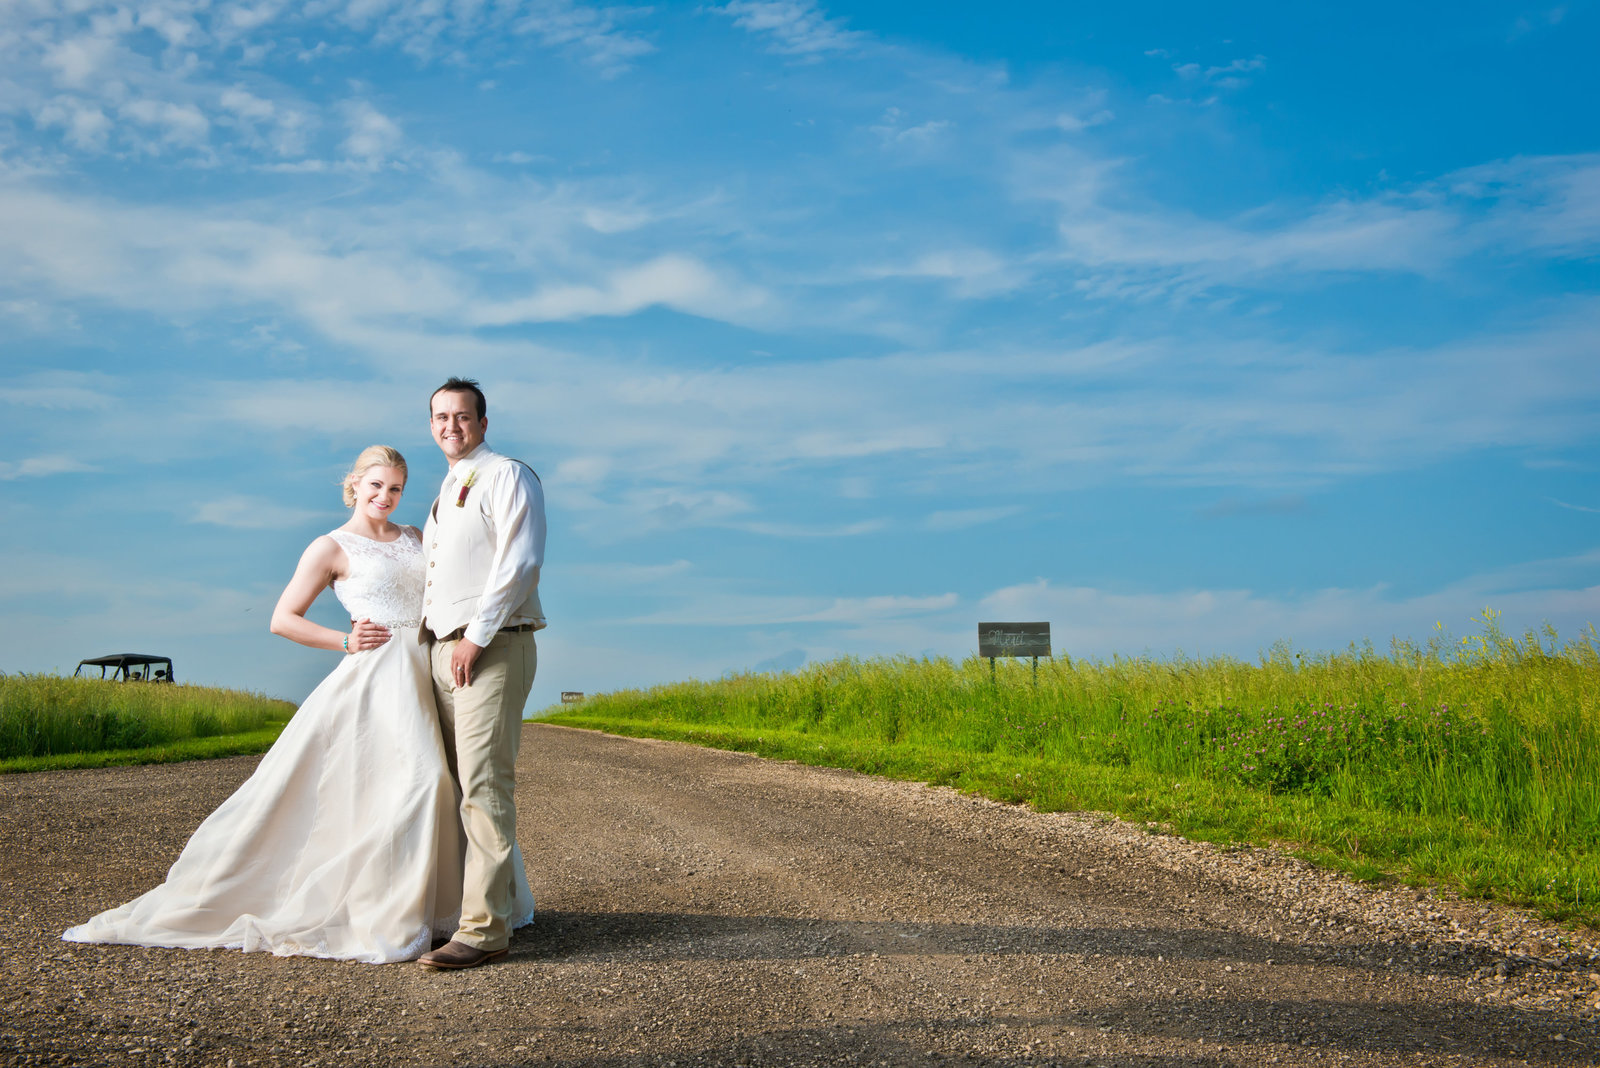 kc-professional-wedding-photographers-0032